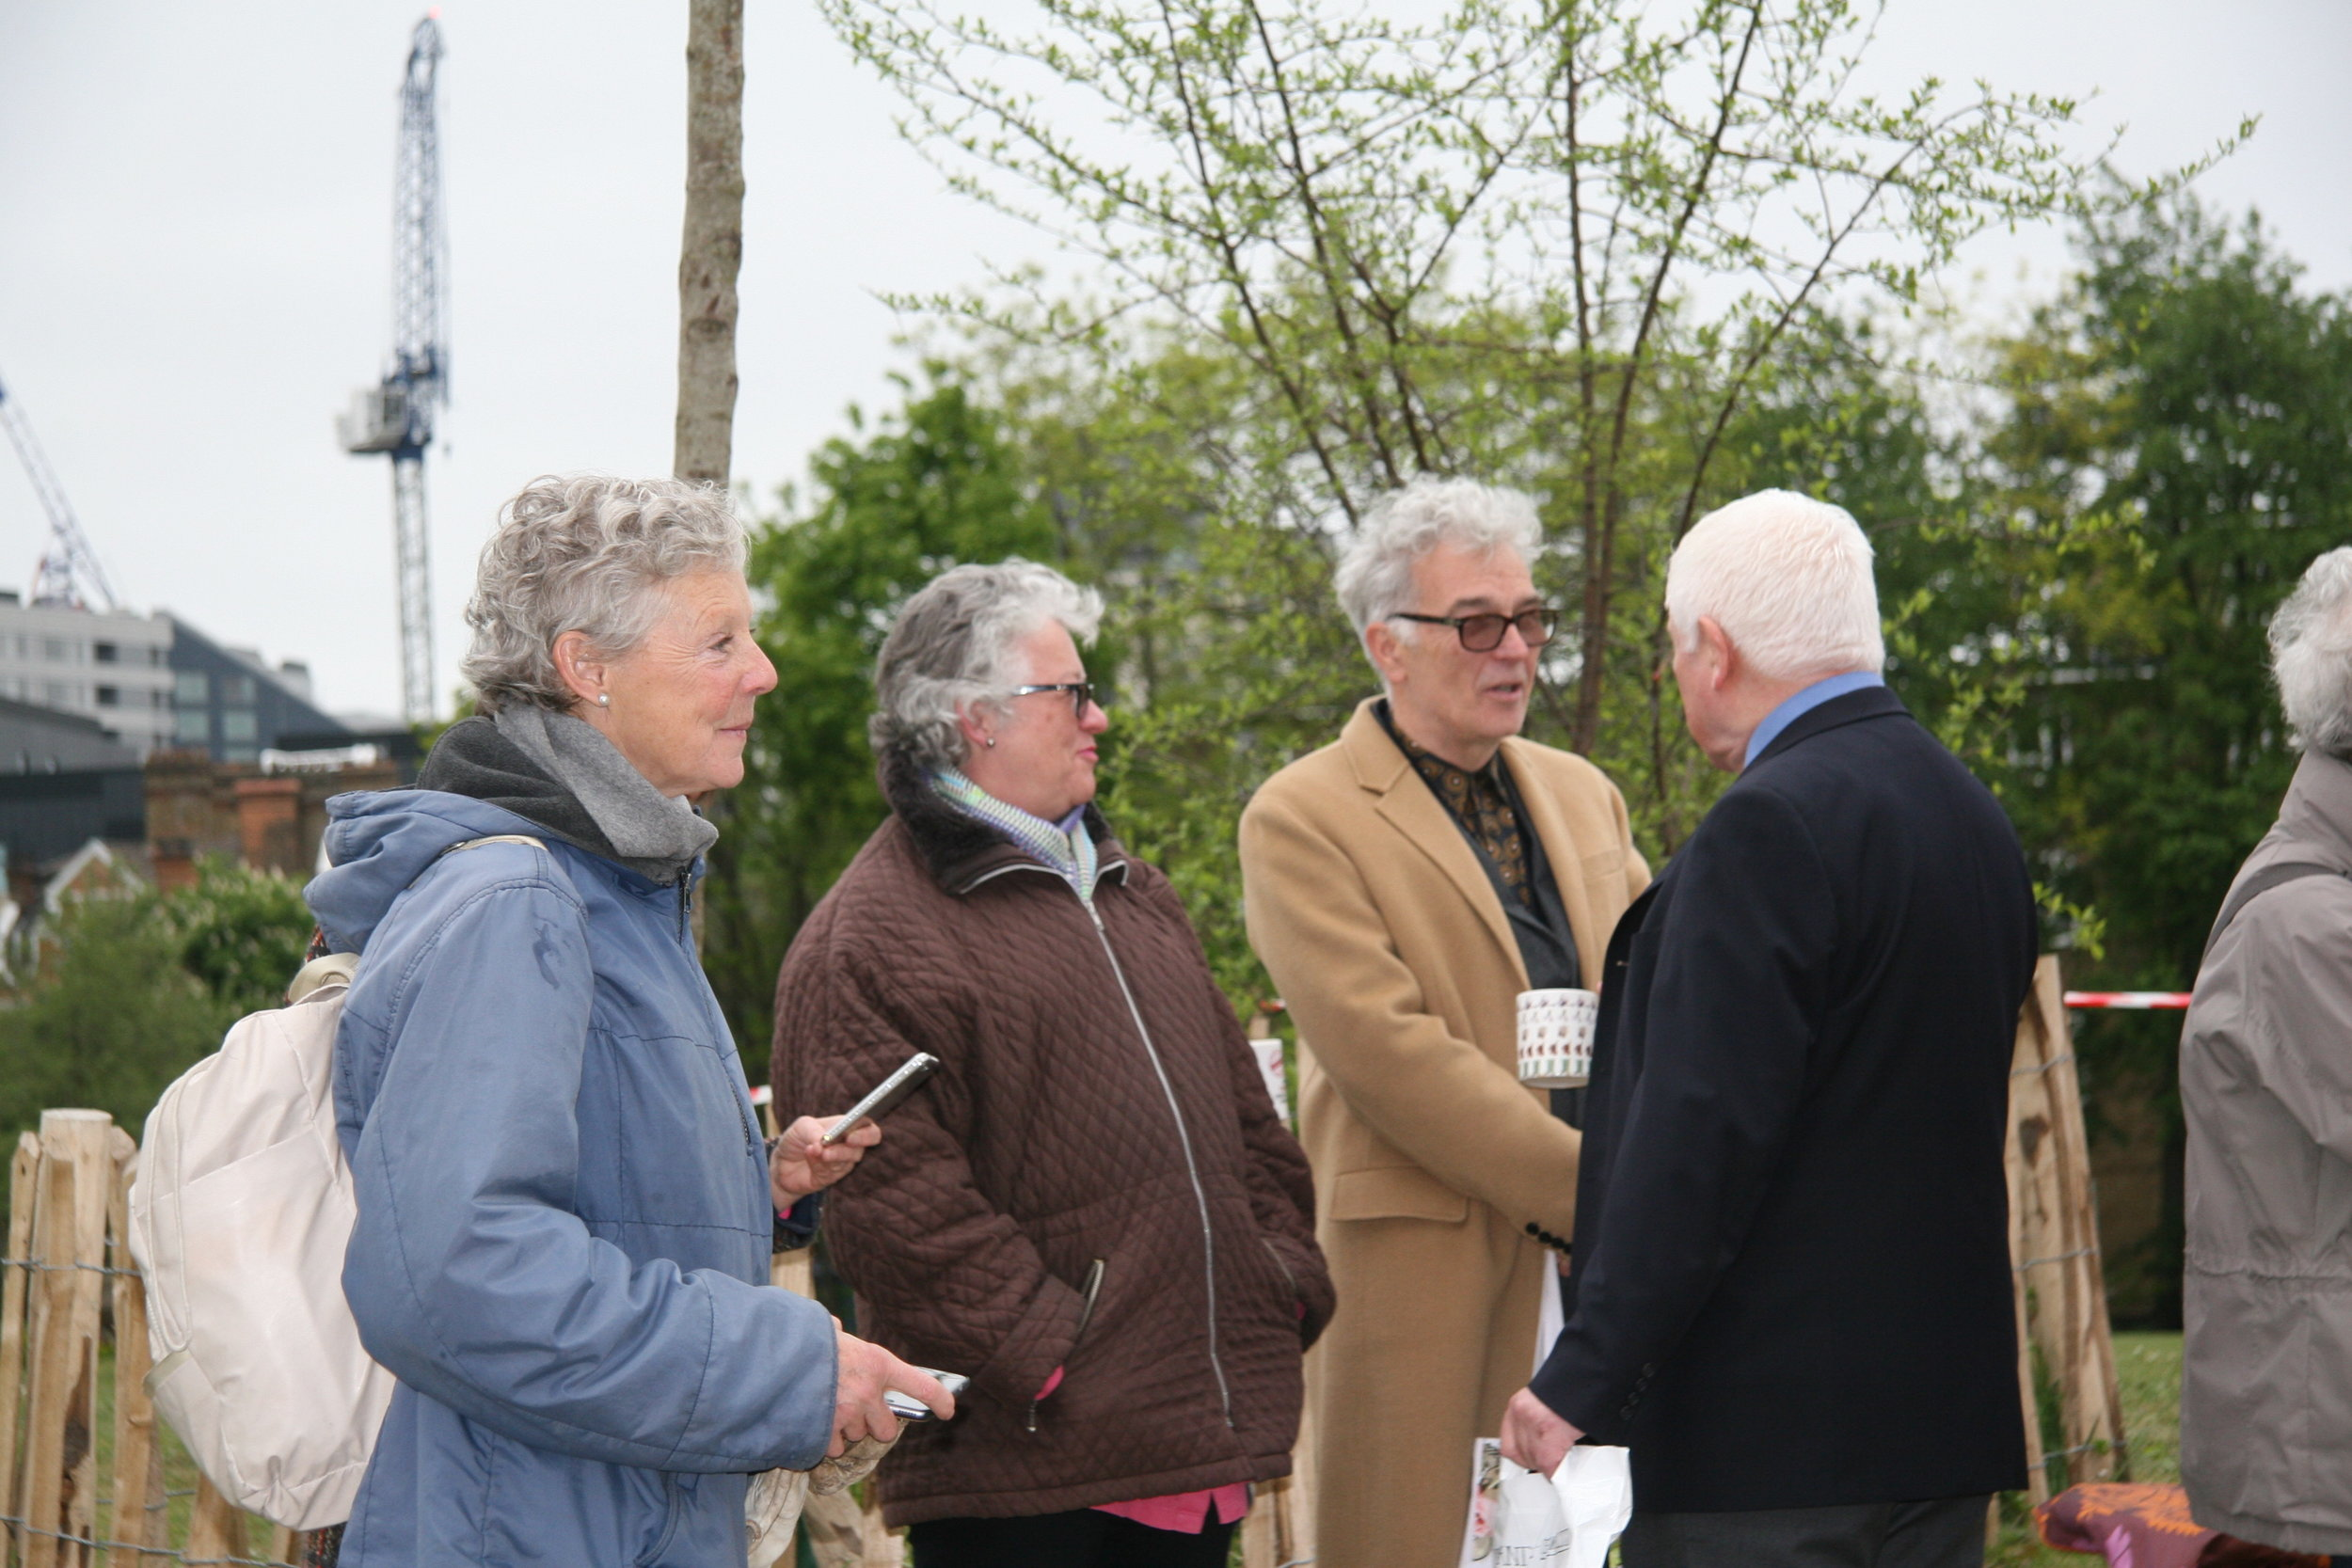 Theresa Hoare of Lambeth parks Development, Kate Pode, Eamonn McMahon talk to Sean Rafferty